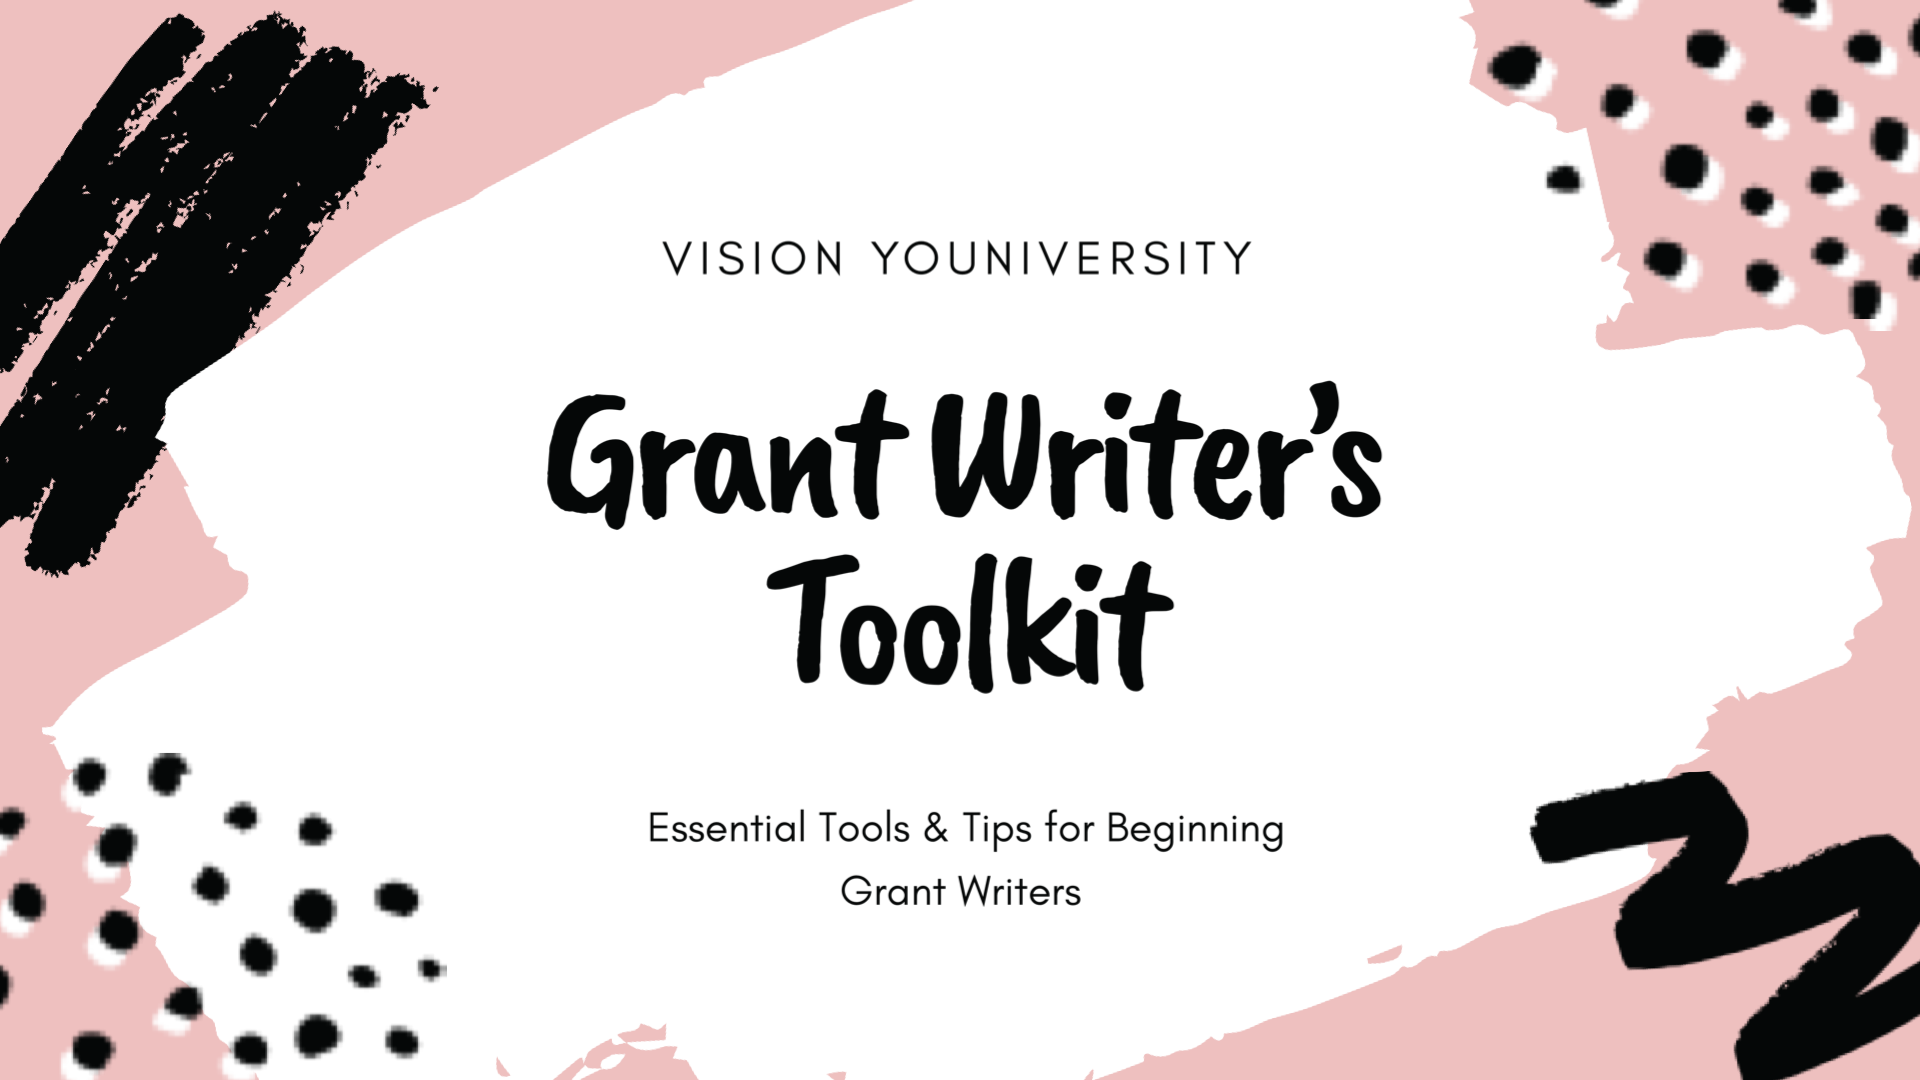 Grant Writer's Toolkit: Essential Tools & Tips for Beginning Grant Writers